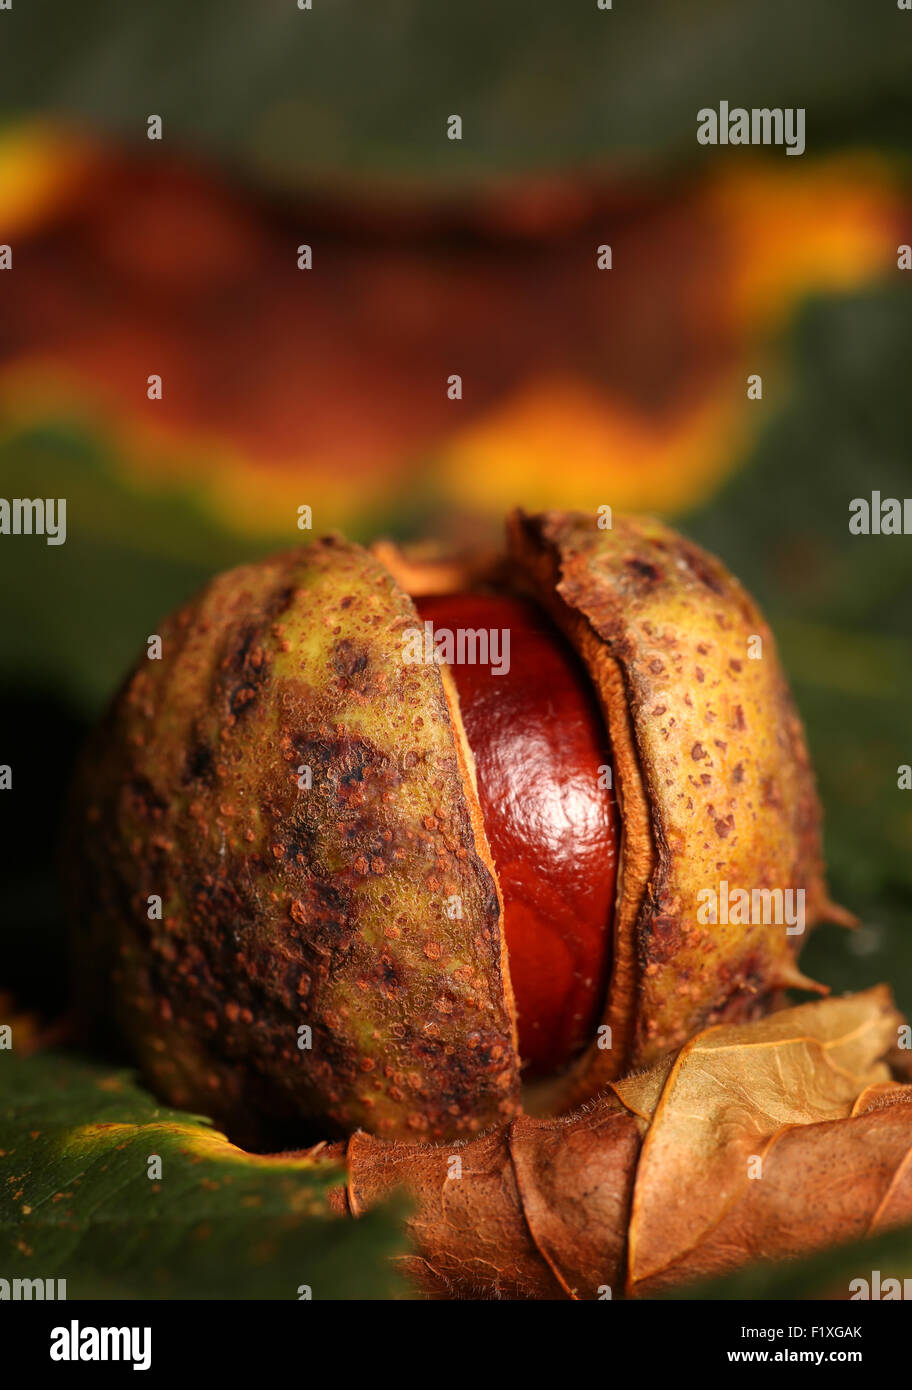 Horse chestnut conker on Autumn leaves - Stock Image